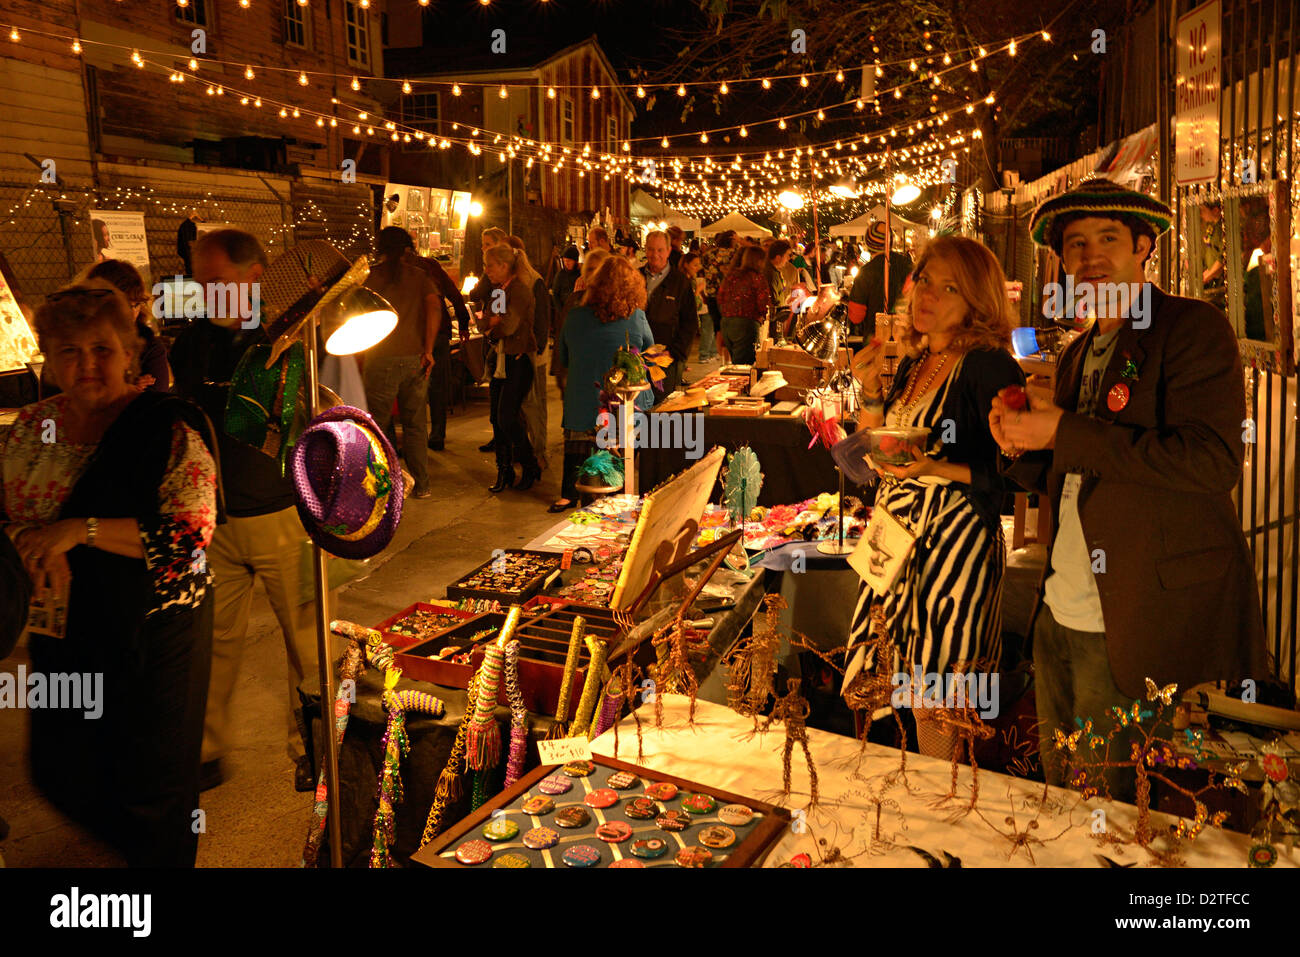 nightime art market frenchman street new orleans - Stock Image